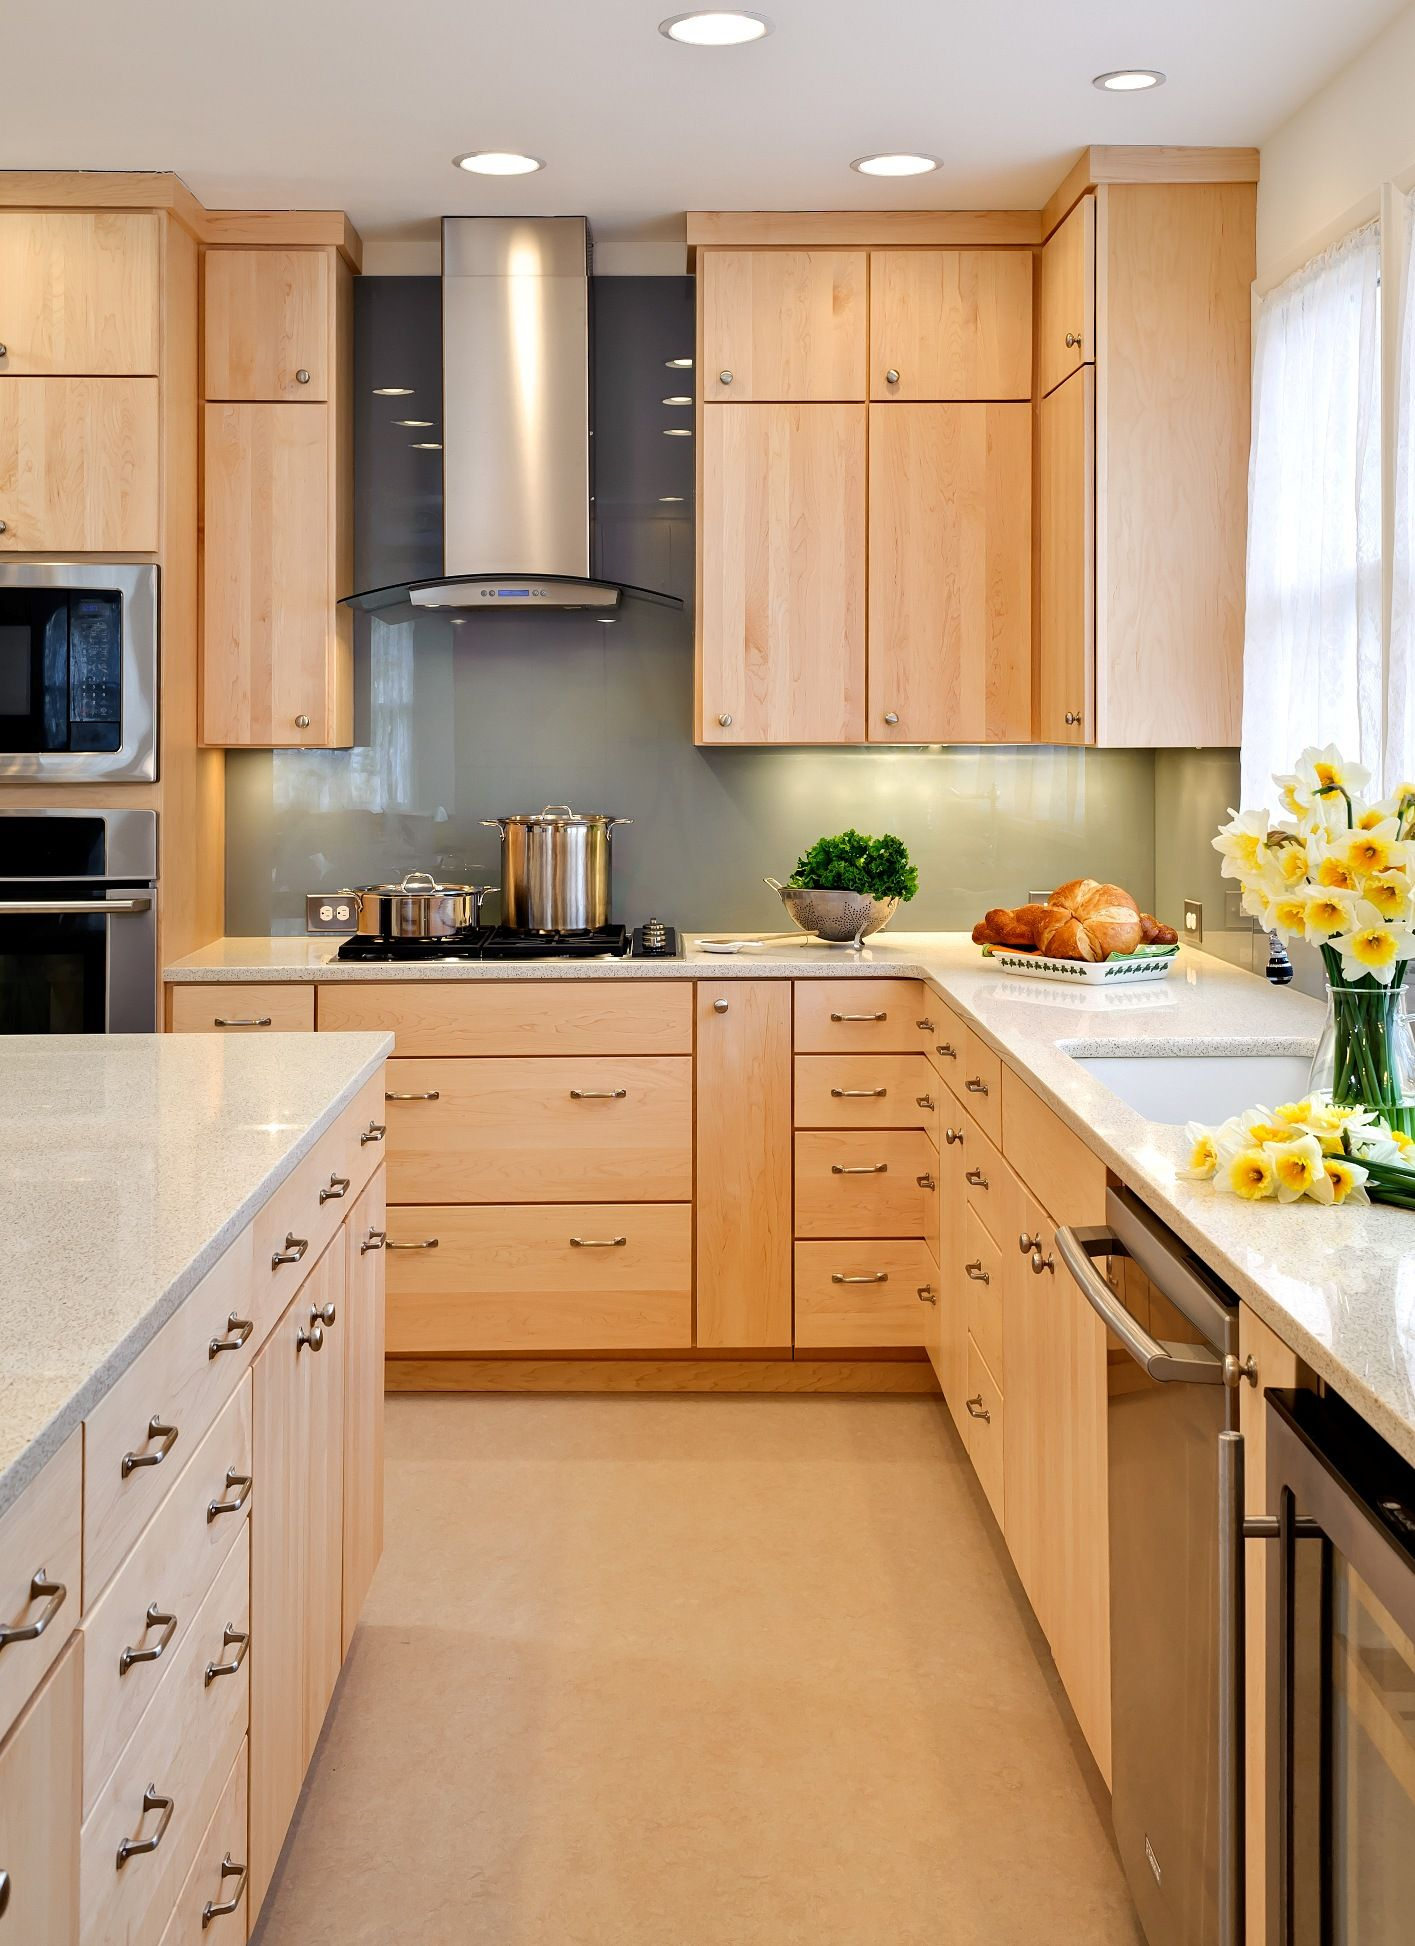 Stunning Design Ideas Of Kitchen And Countertops